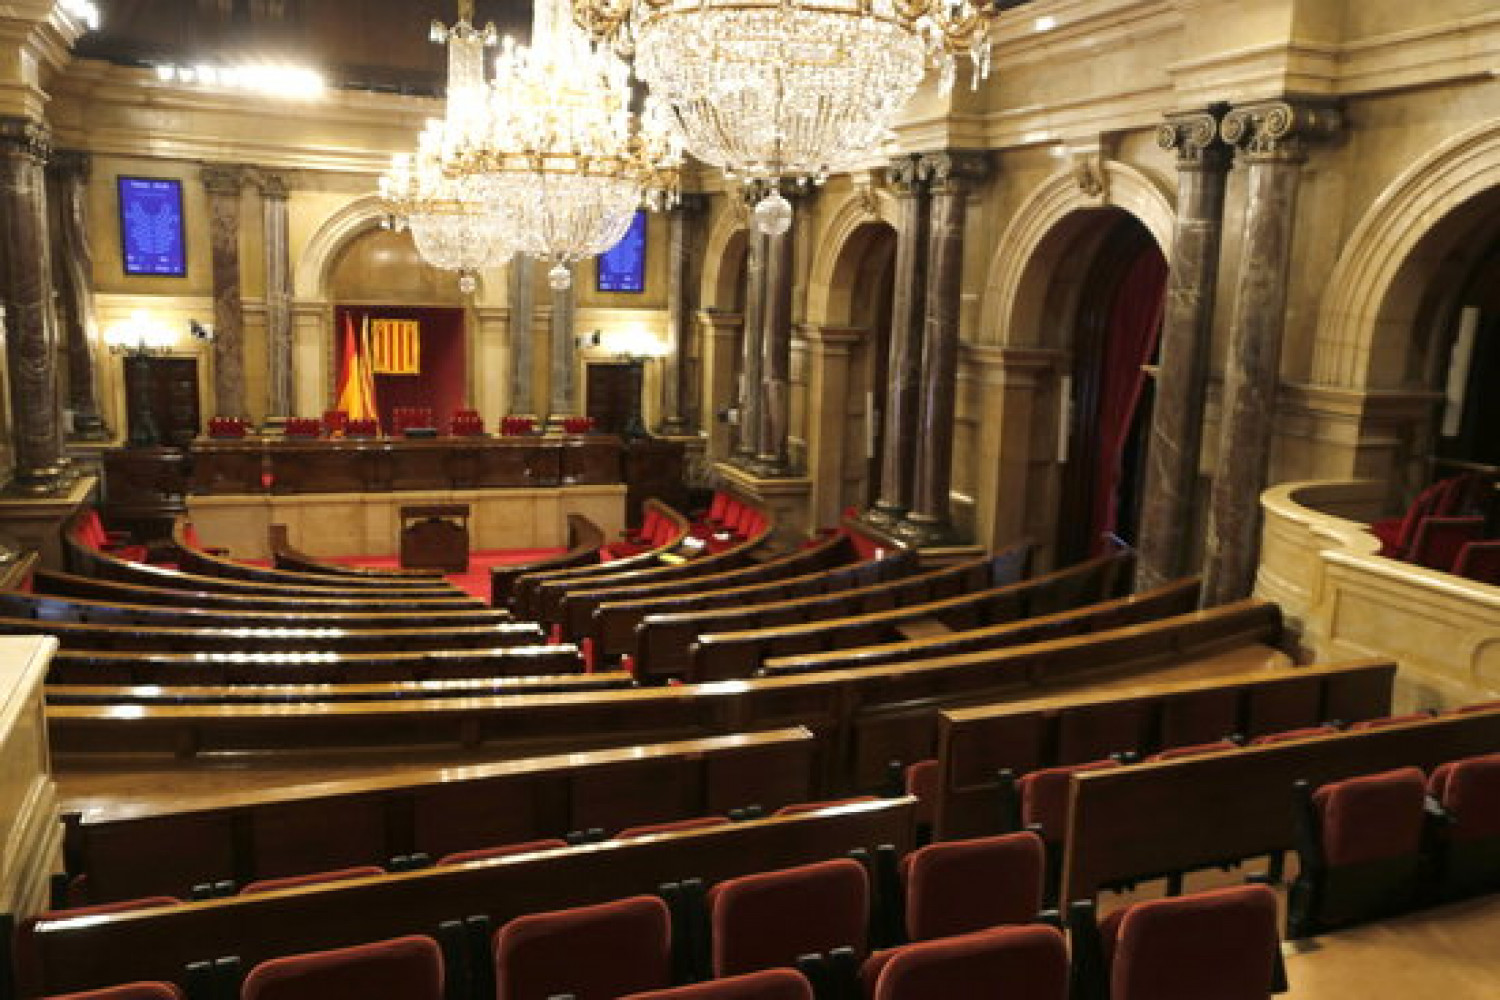 Image of the Catalan parliament empty, on July 18, 2018 (by Guillem Roset)